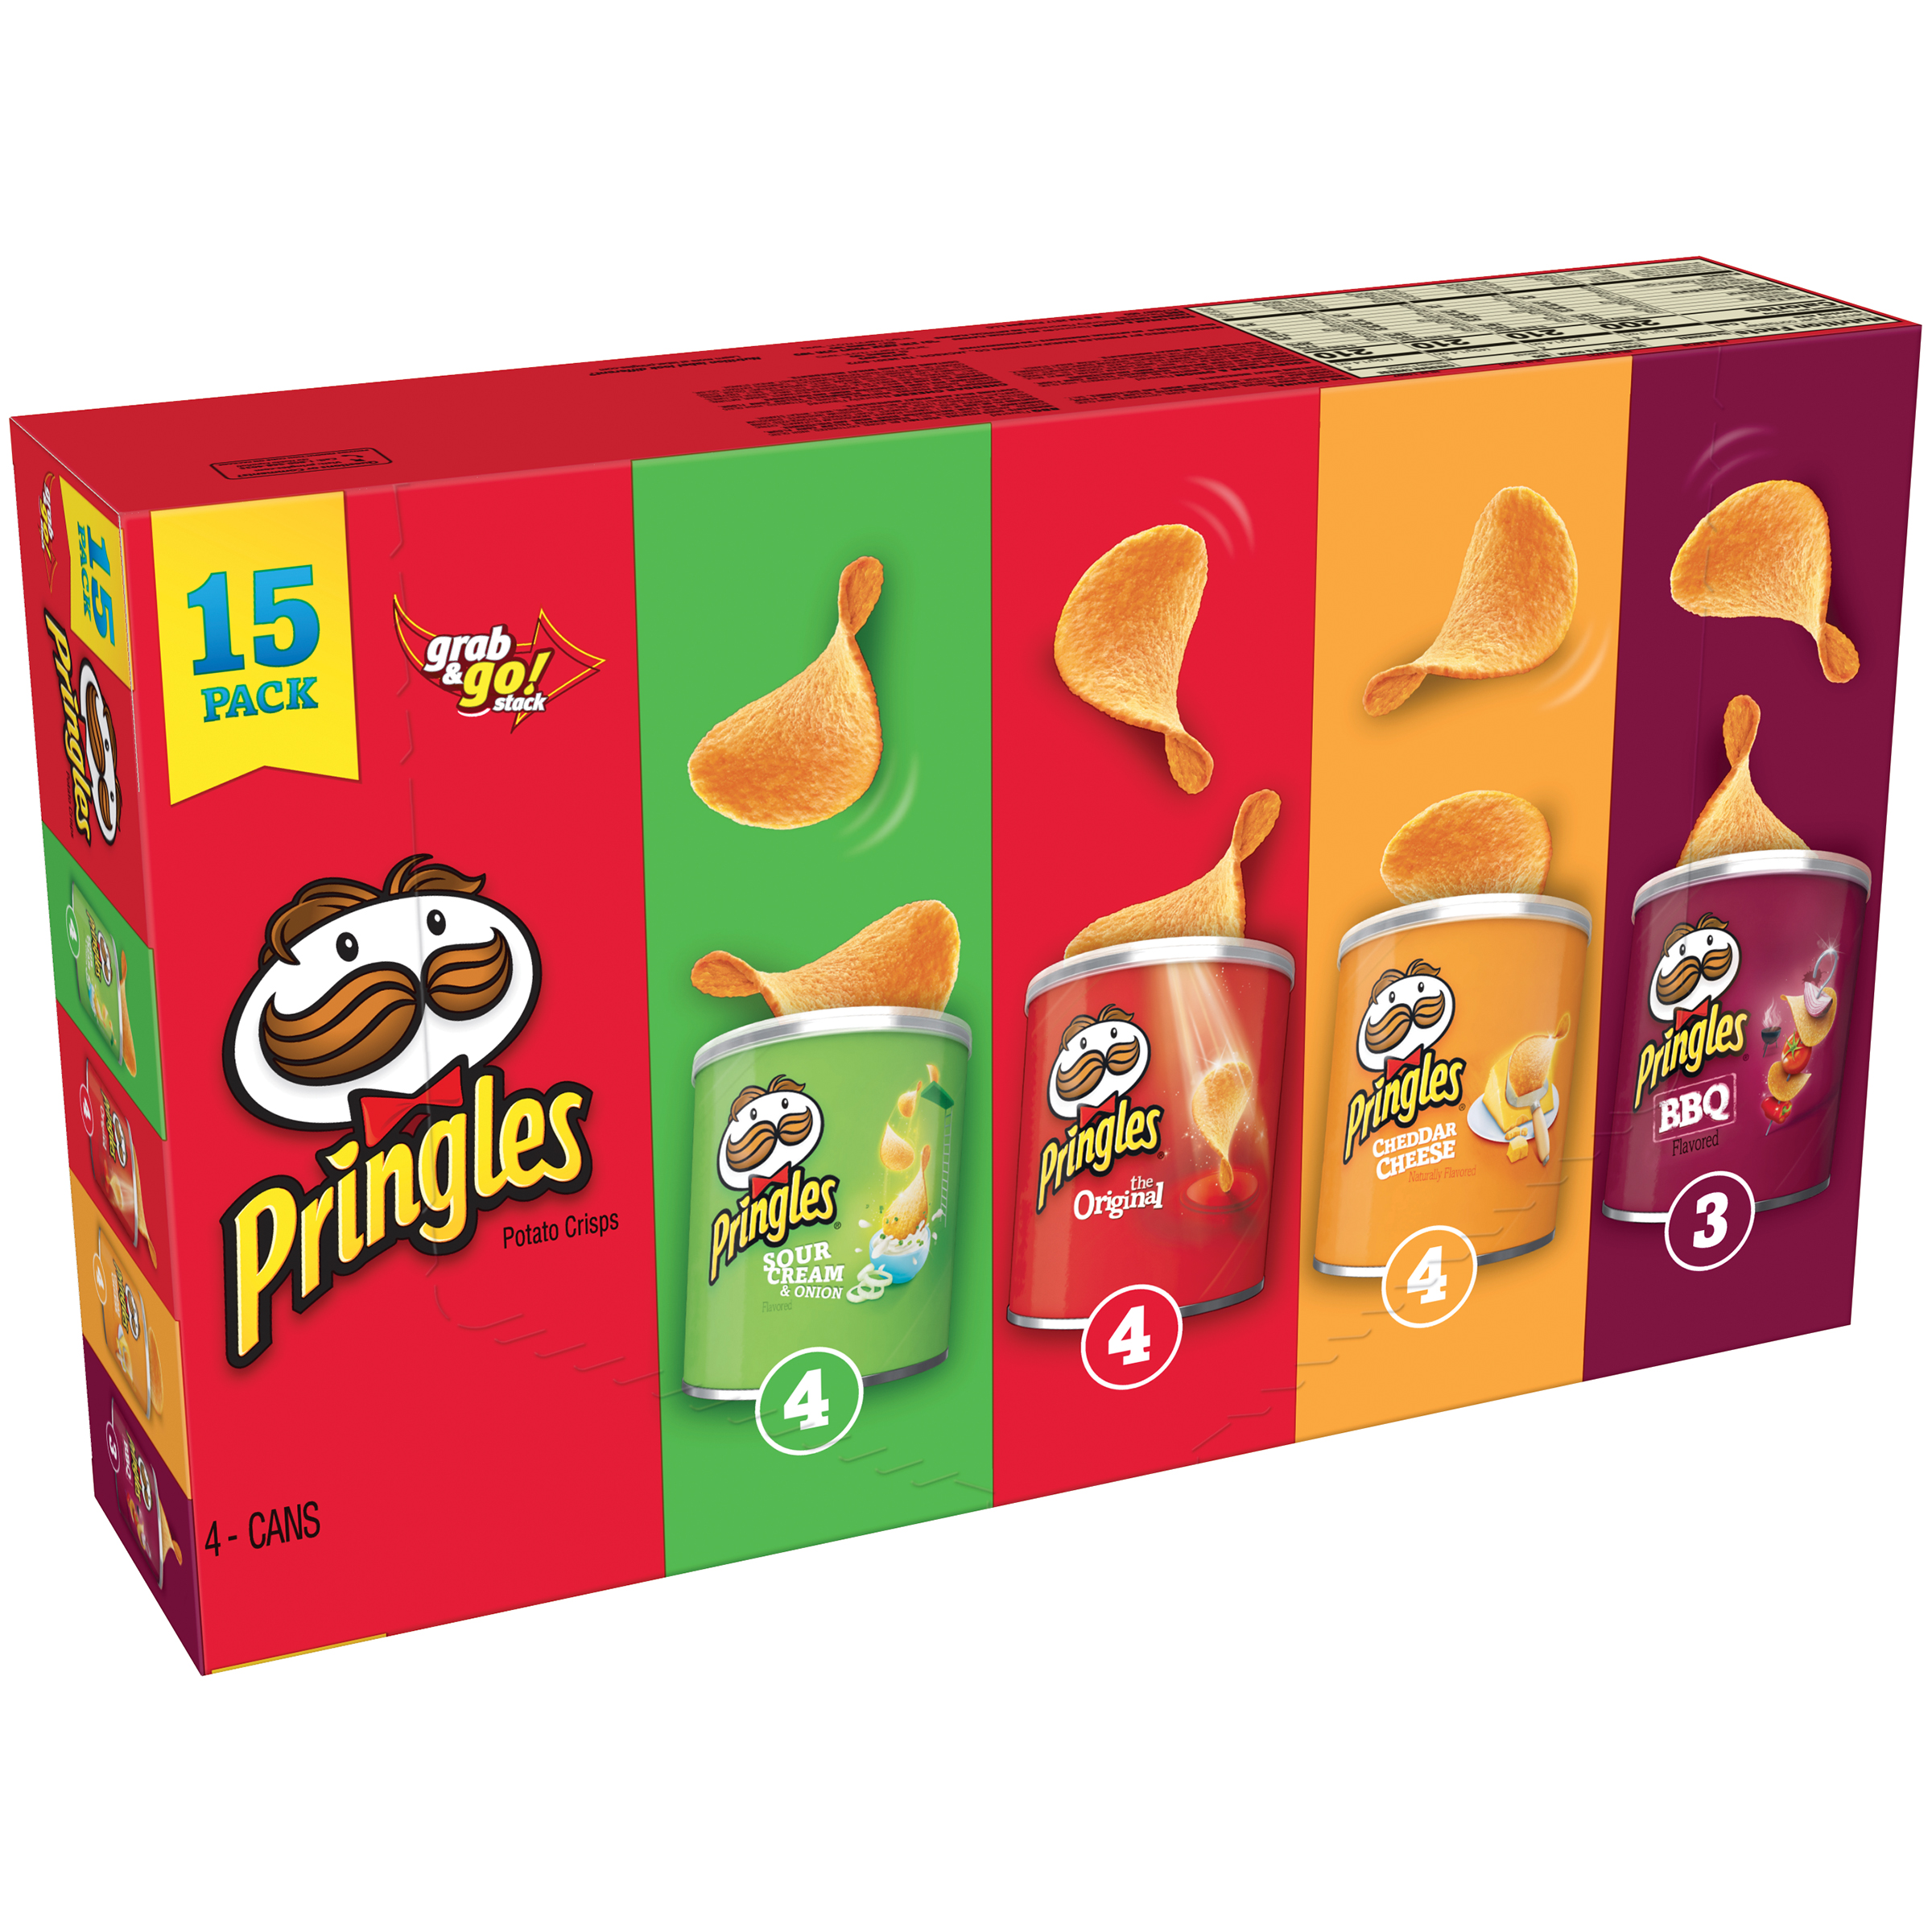 Pringles Sour Cream & Onion, The Original, Cheddar Cheese & BBQ Potato Crisps Variety Pack 15 Ct 20.6 oz